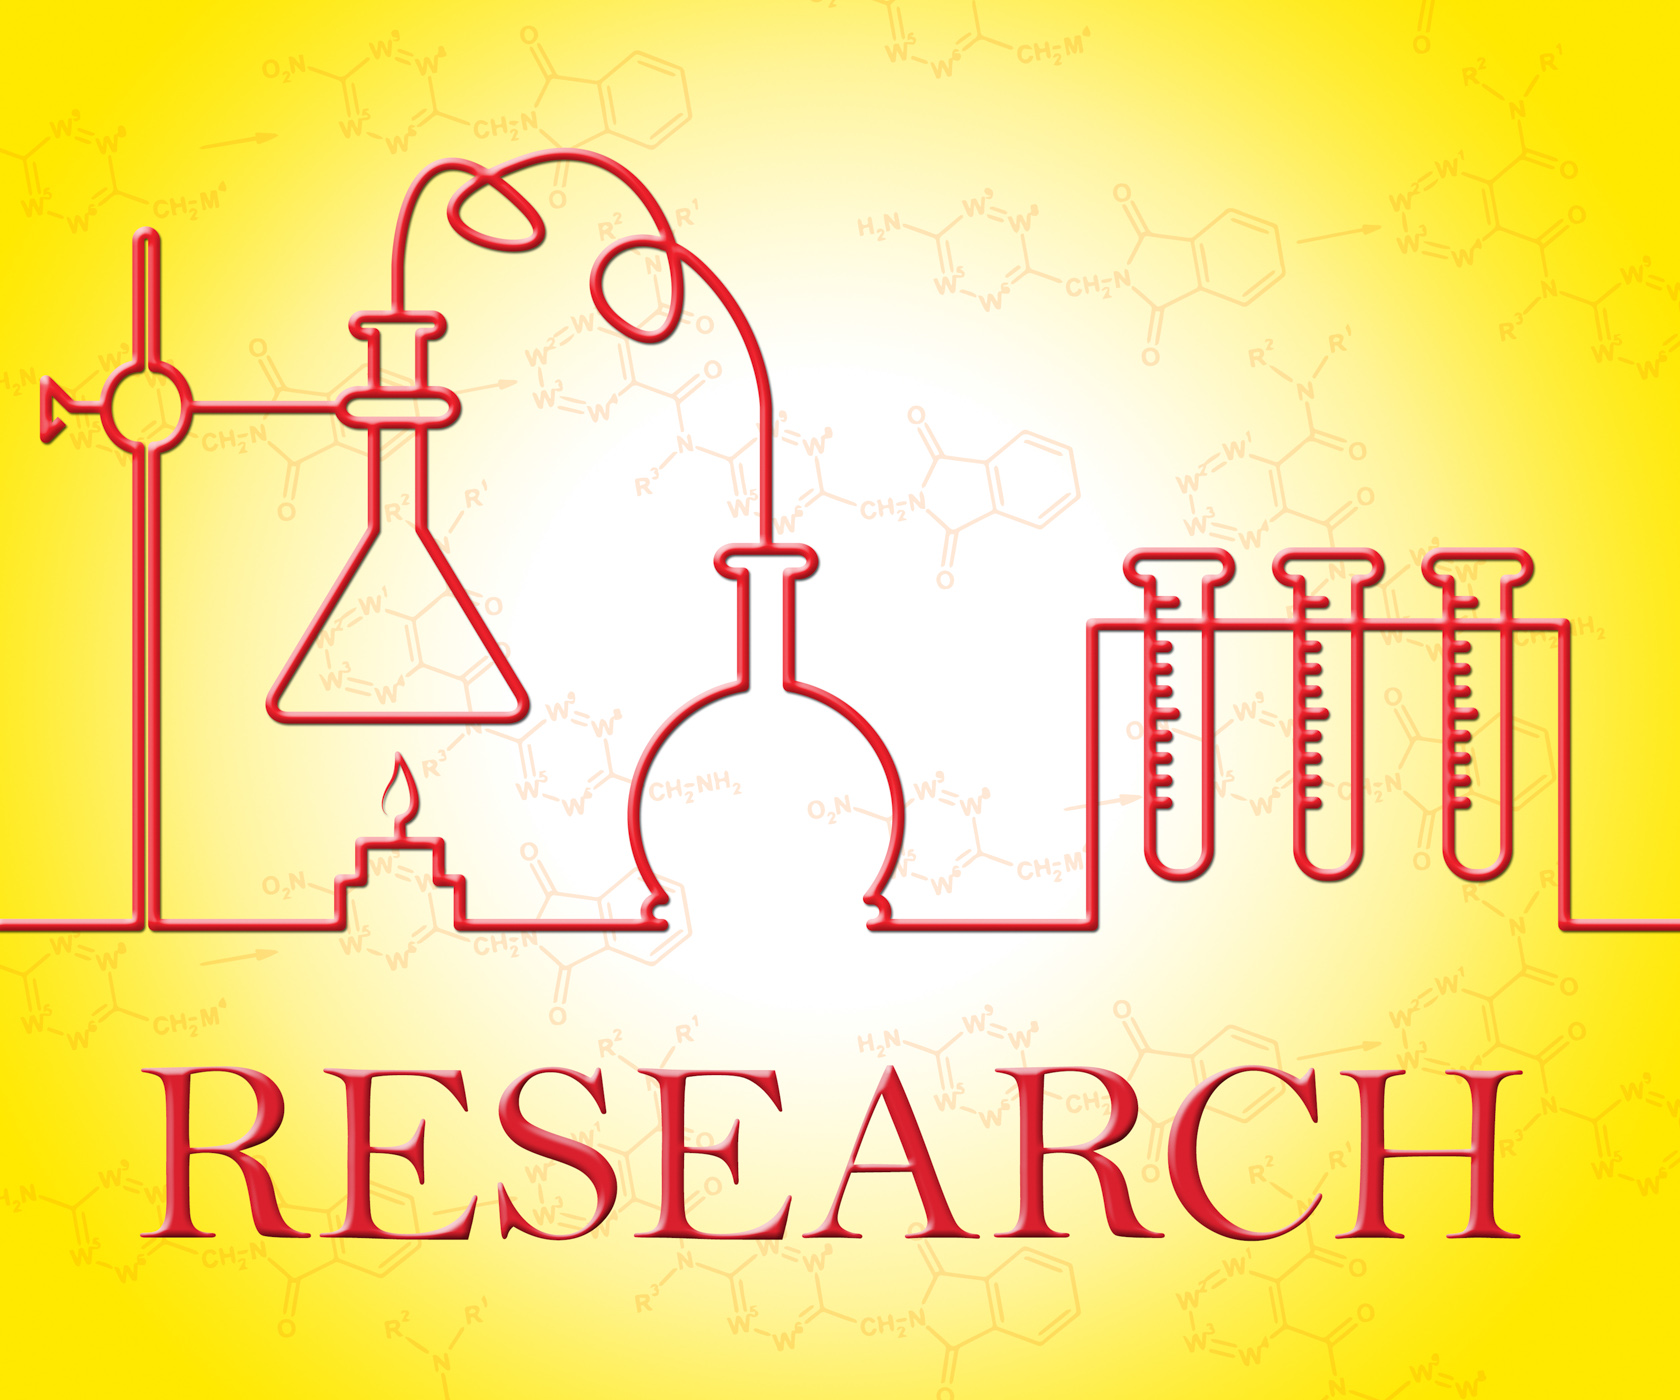 Research Experiment Indicates Researcher Test And Evaluation, Instruments, Test, Study, Studies, HQ Photo